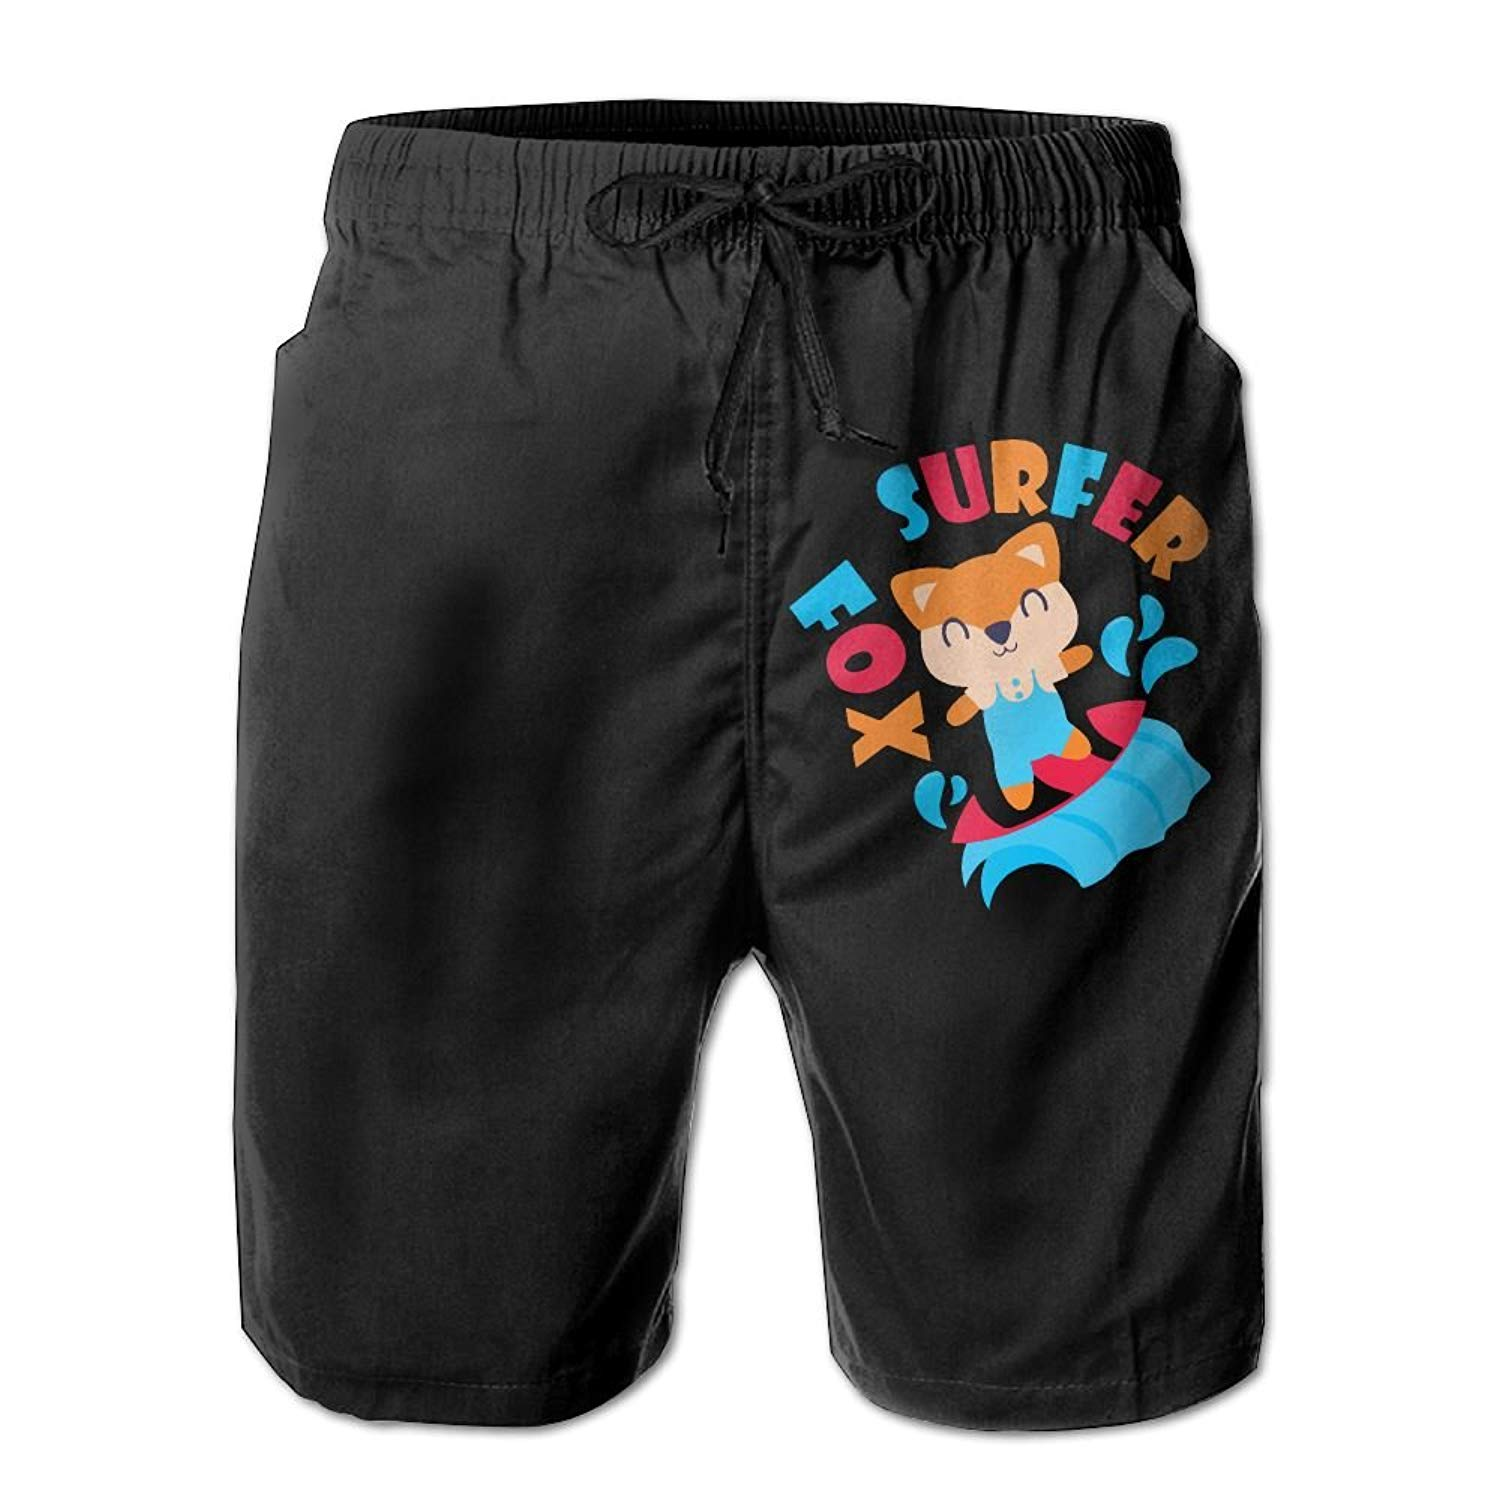 Blue//Red Surfer Dude Mish Boys Boys Board Shorts